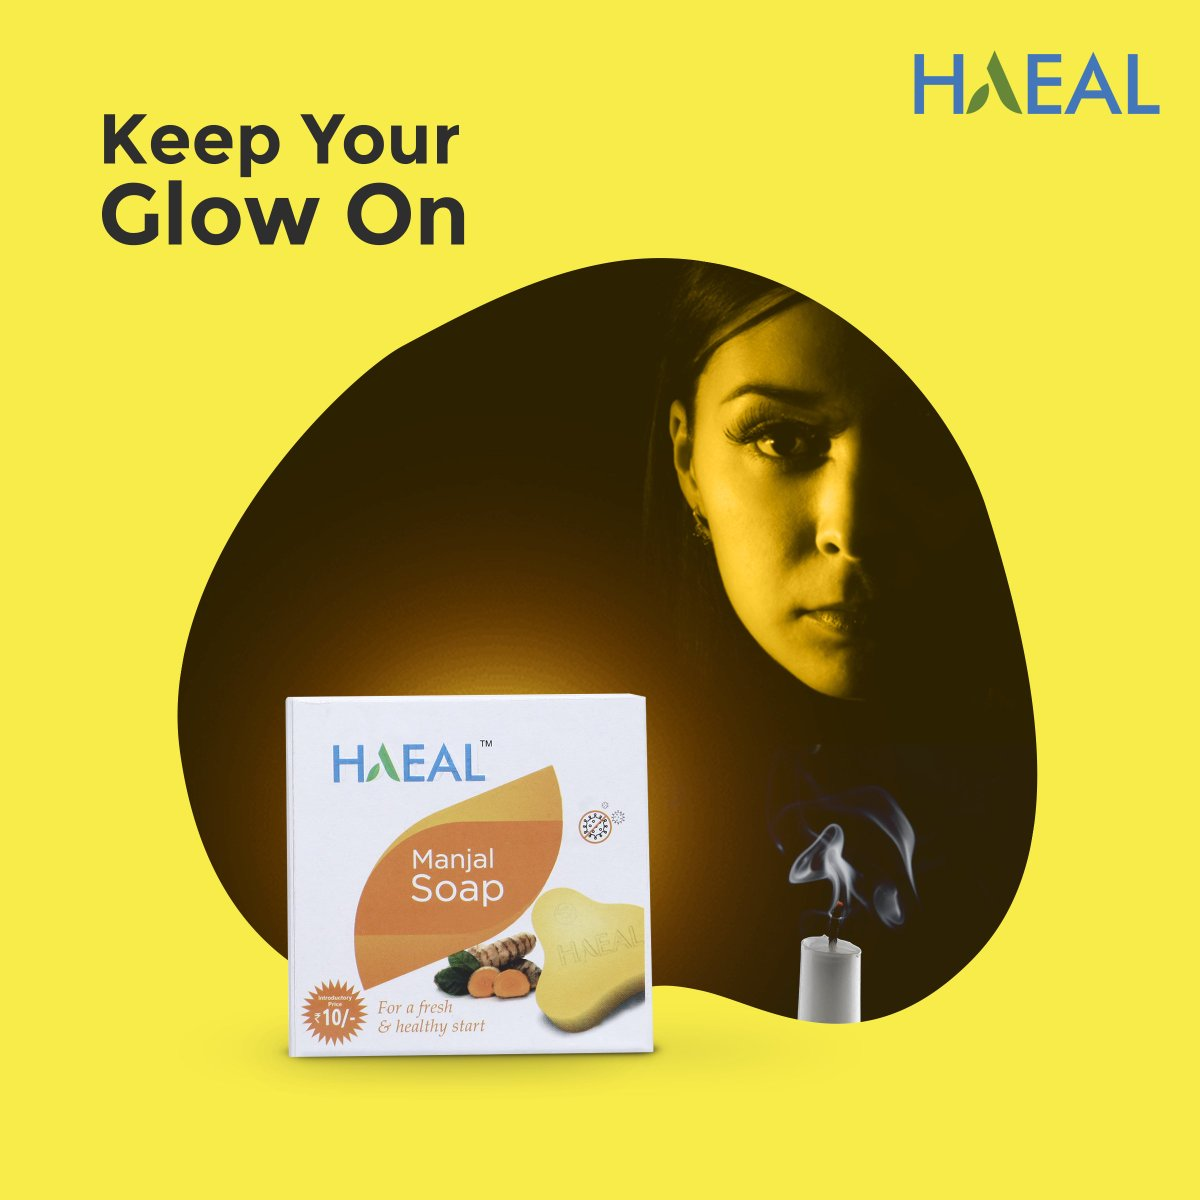 Use HAEAL Manjal Soap daily to give your skin that youthful glow. #manjalsoap #turmeric #ayurveda #haealwellness #health #soap #turmericsoap #letshaeal #happinessinhealing Get your glow at